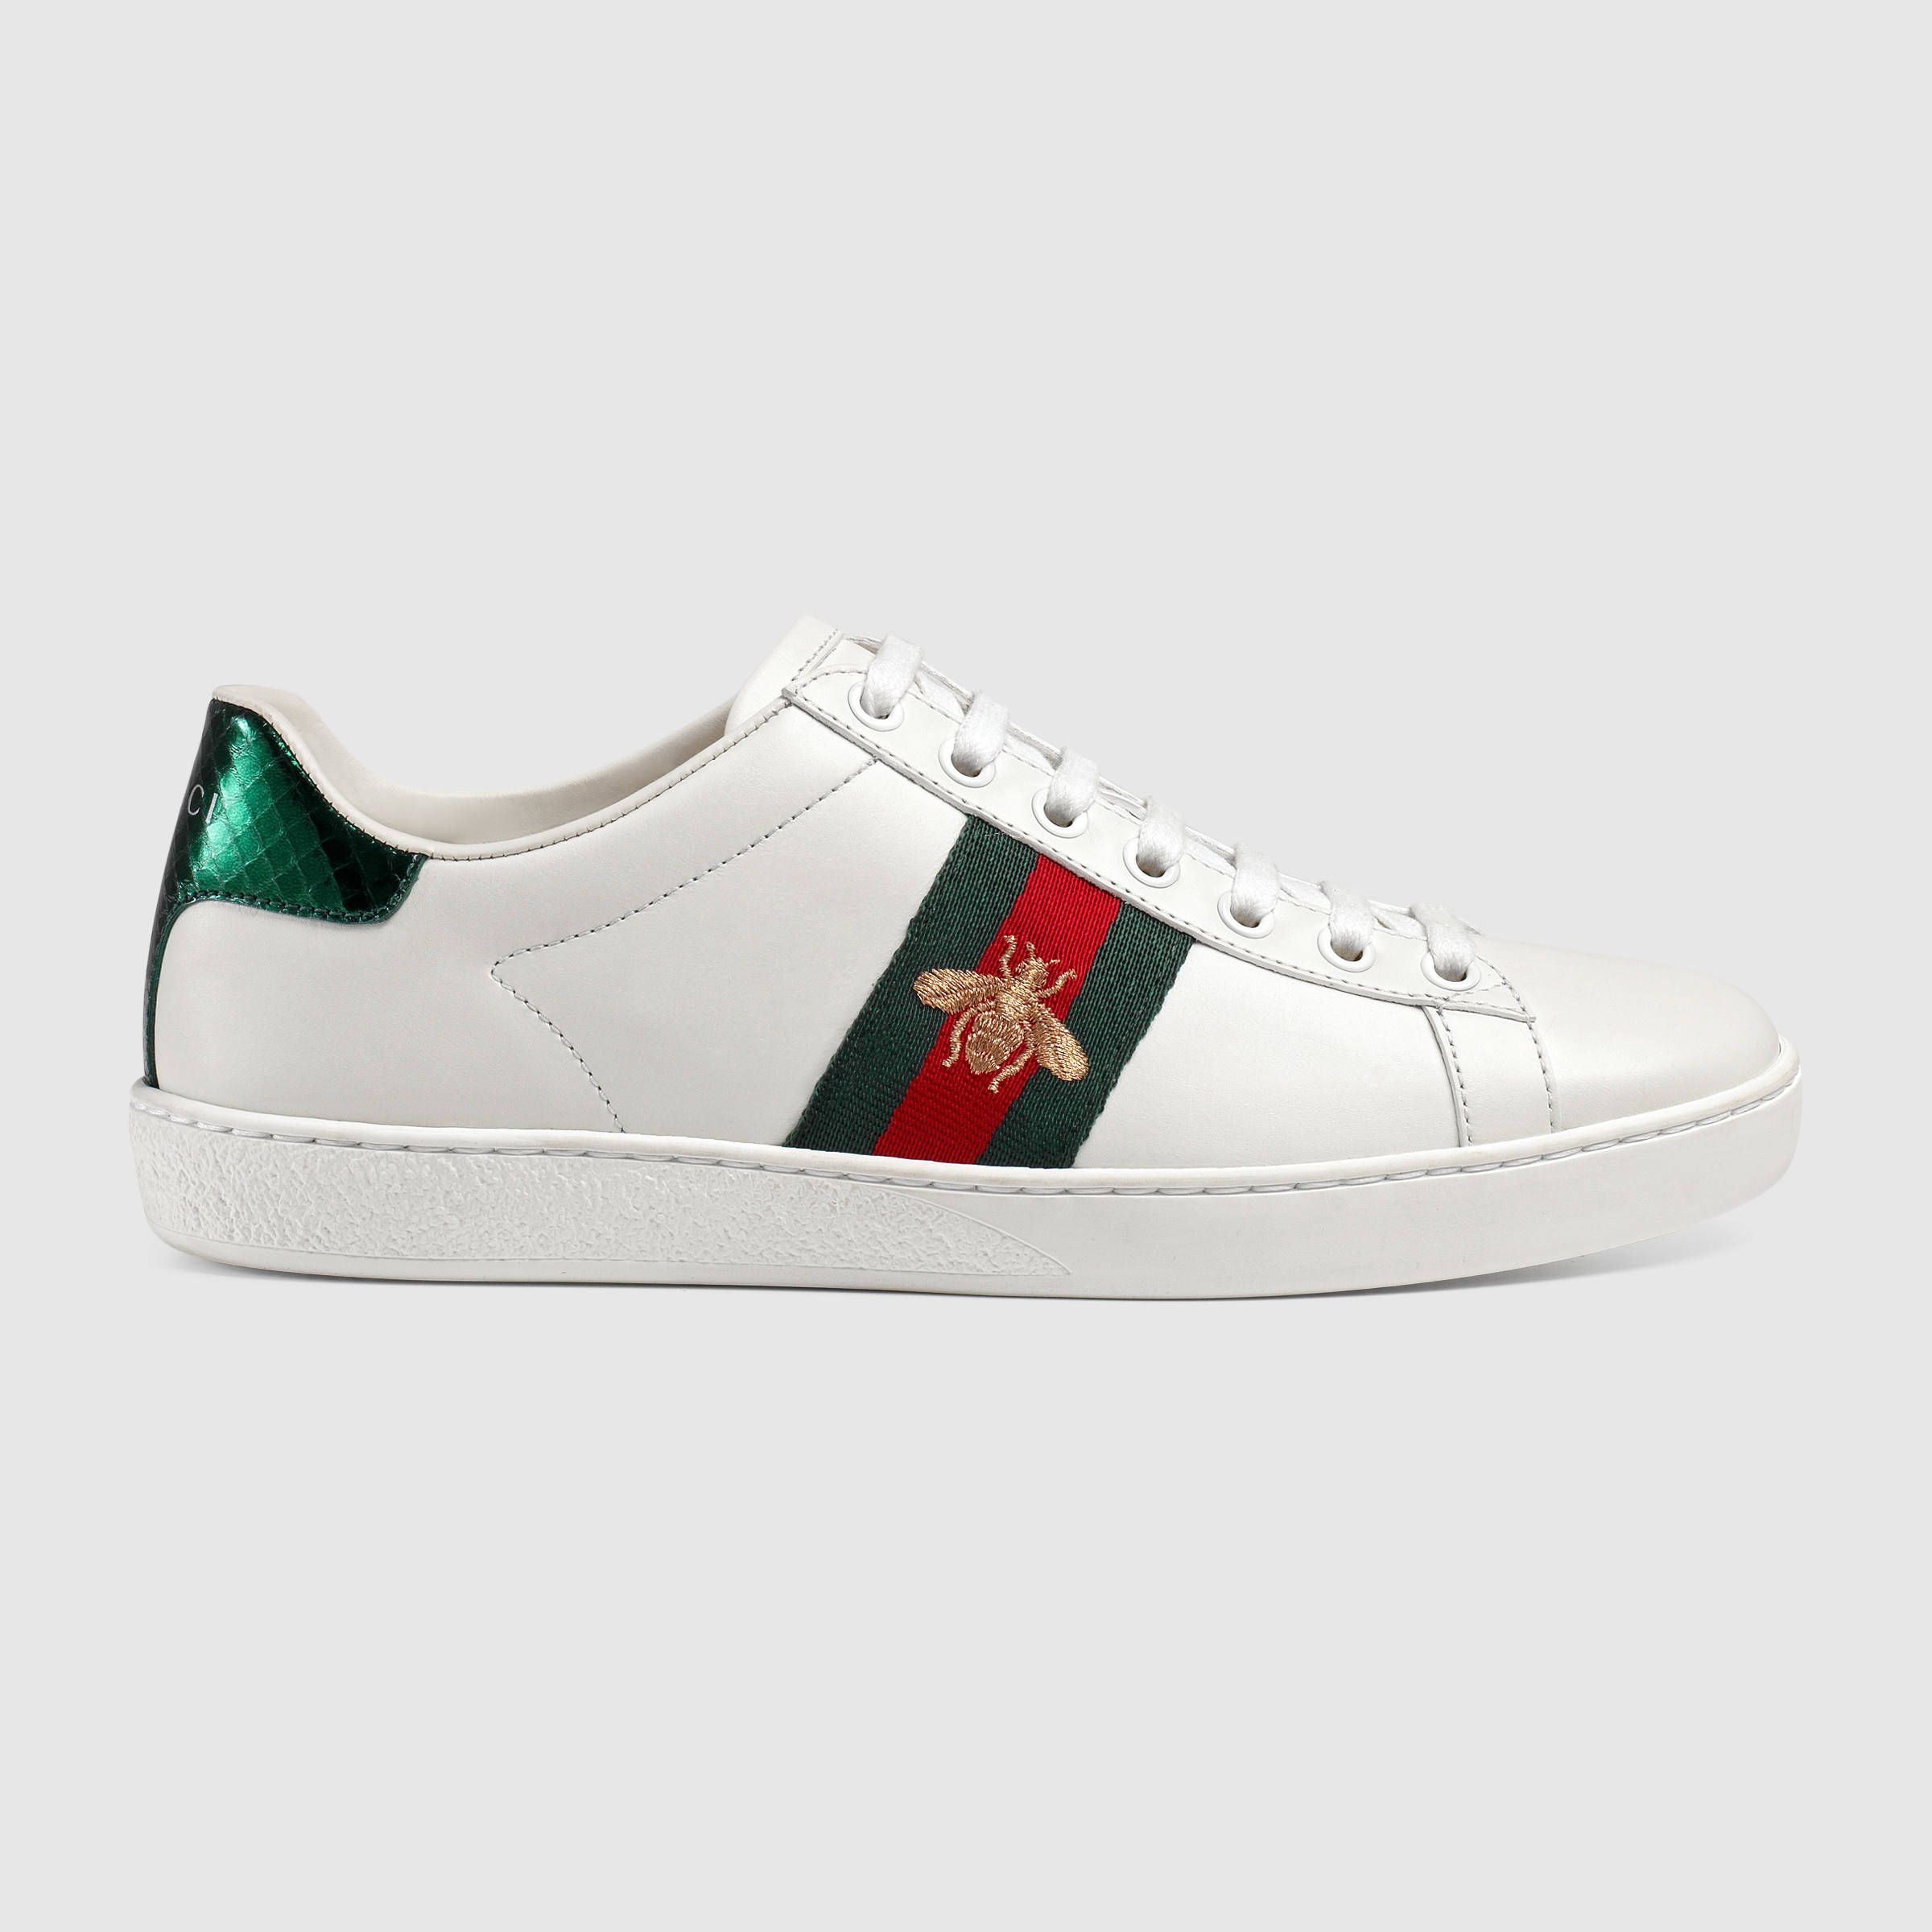 Ace embroidered sneaker   m y s t y l e   Sneakers, Gucci, Shoes 4bf96ac33b43